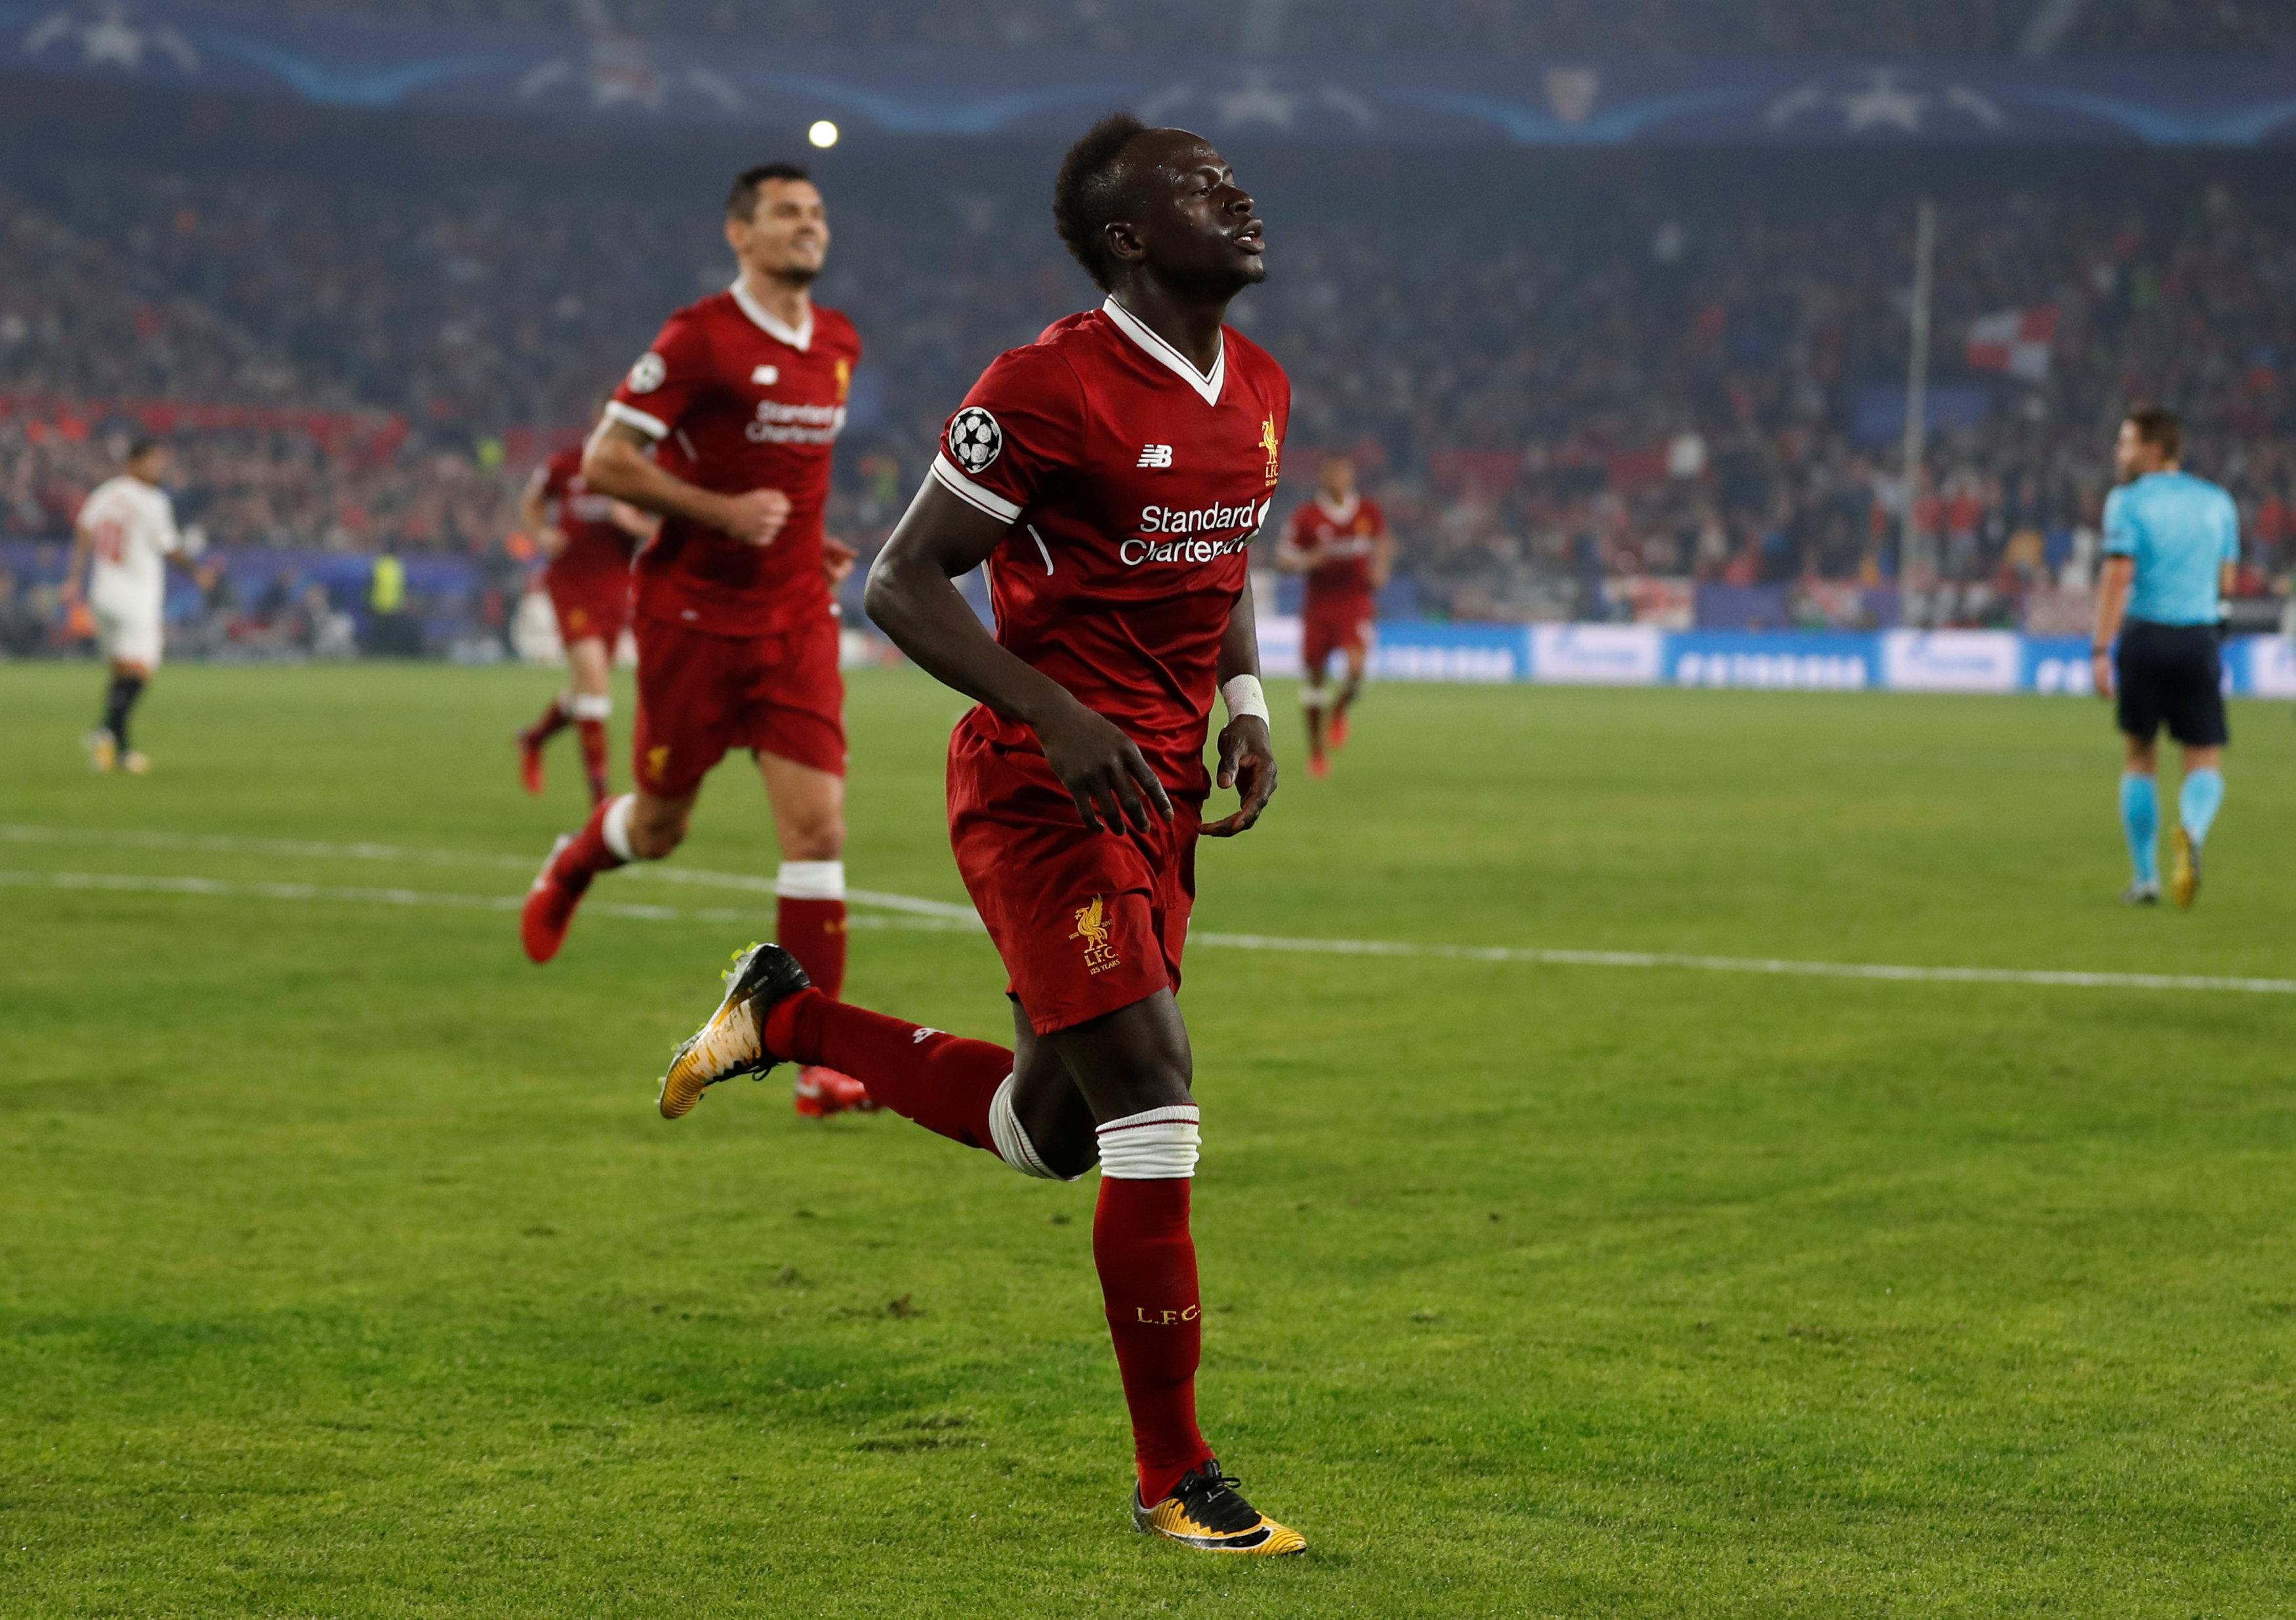 Mane scored the second